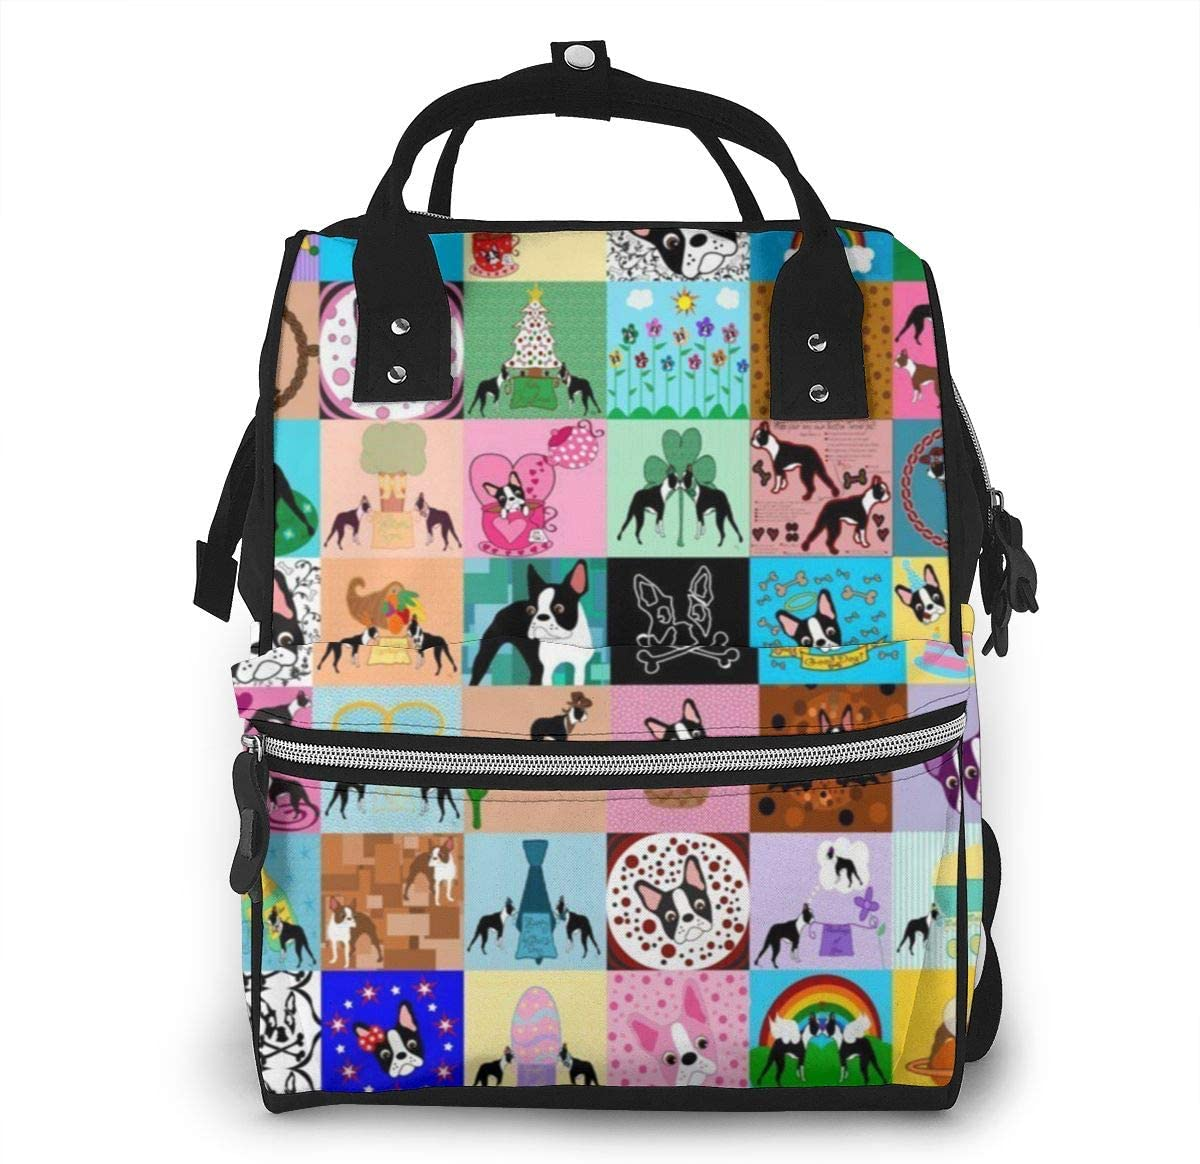 NiYoung Diaper Bag Backpack,Stylish Baby Nappy Bags for Mom and Dad,Waterproof,Multi-Function Travel Back Pack for Boys and Girls,Large Capacity and Durable,Crazy Faux Boston Terrier